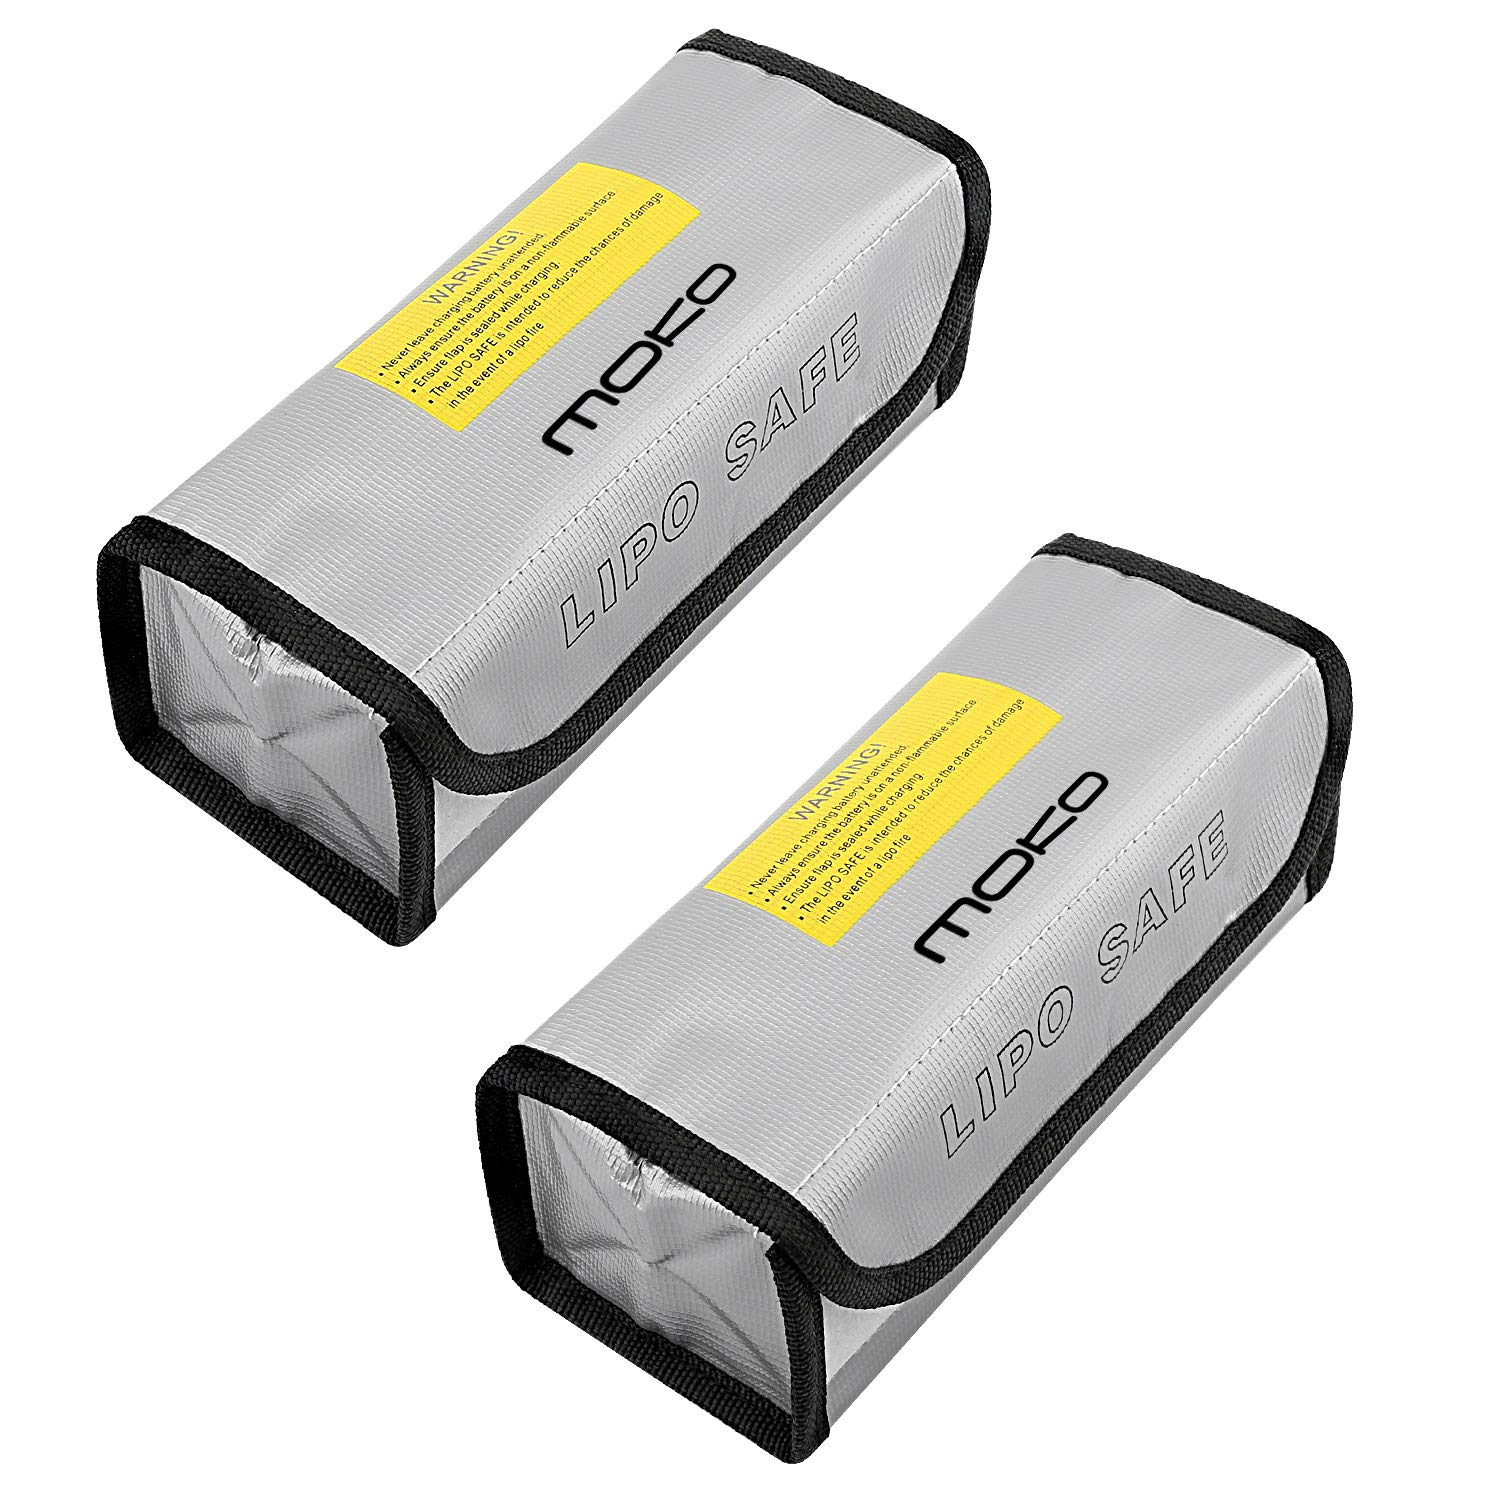 MoKo [2 PCS] LIPO Battery Fireproof Explosion Proof Safe Bag Fire Resistant Safe Box Guard Storage Pouch Sack for Protecting LIPO Battery and Charging (185 x 75 x 60 mm), Silver